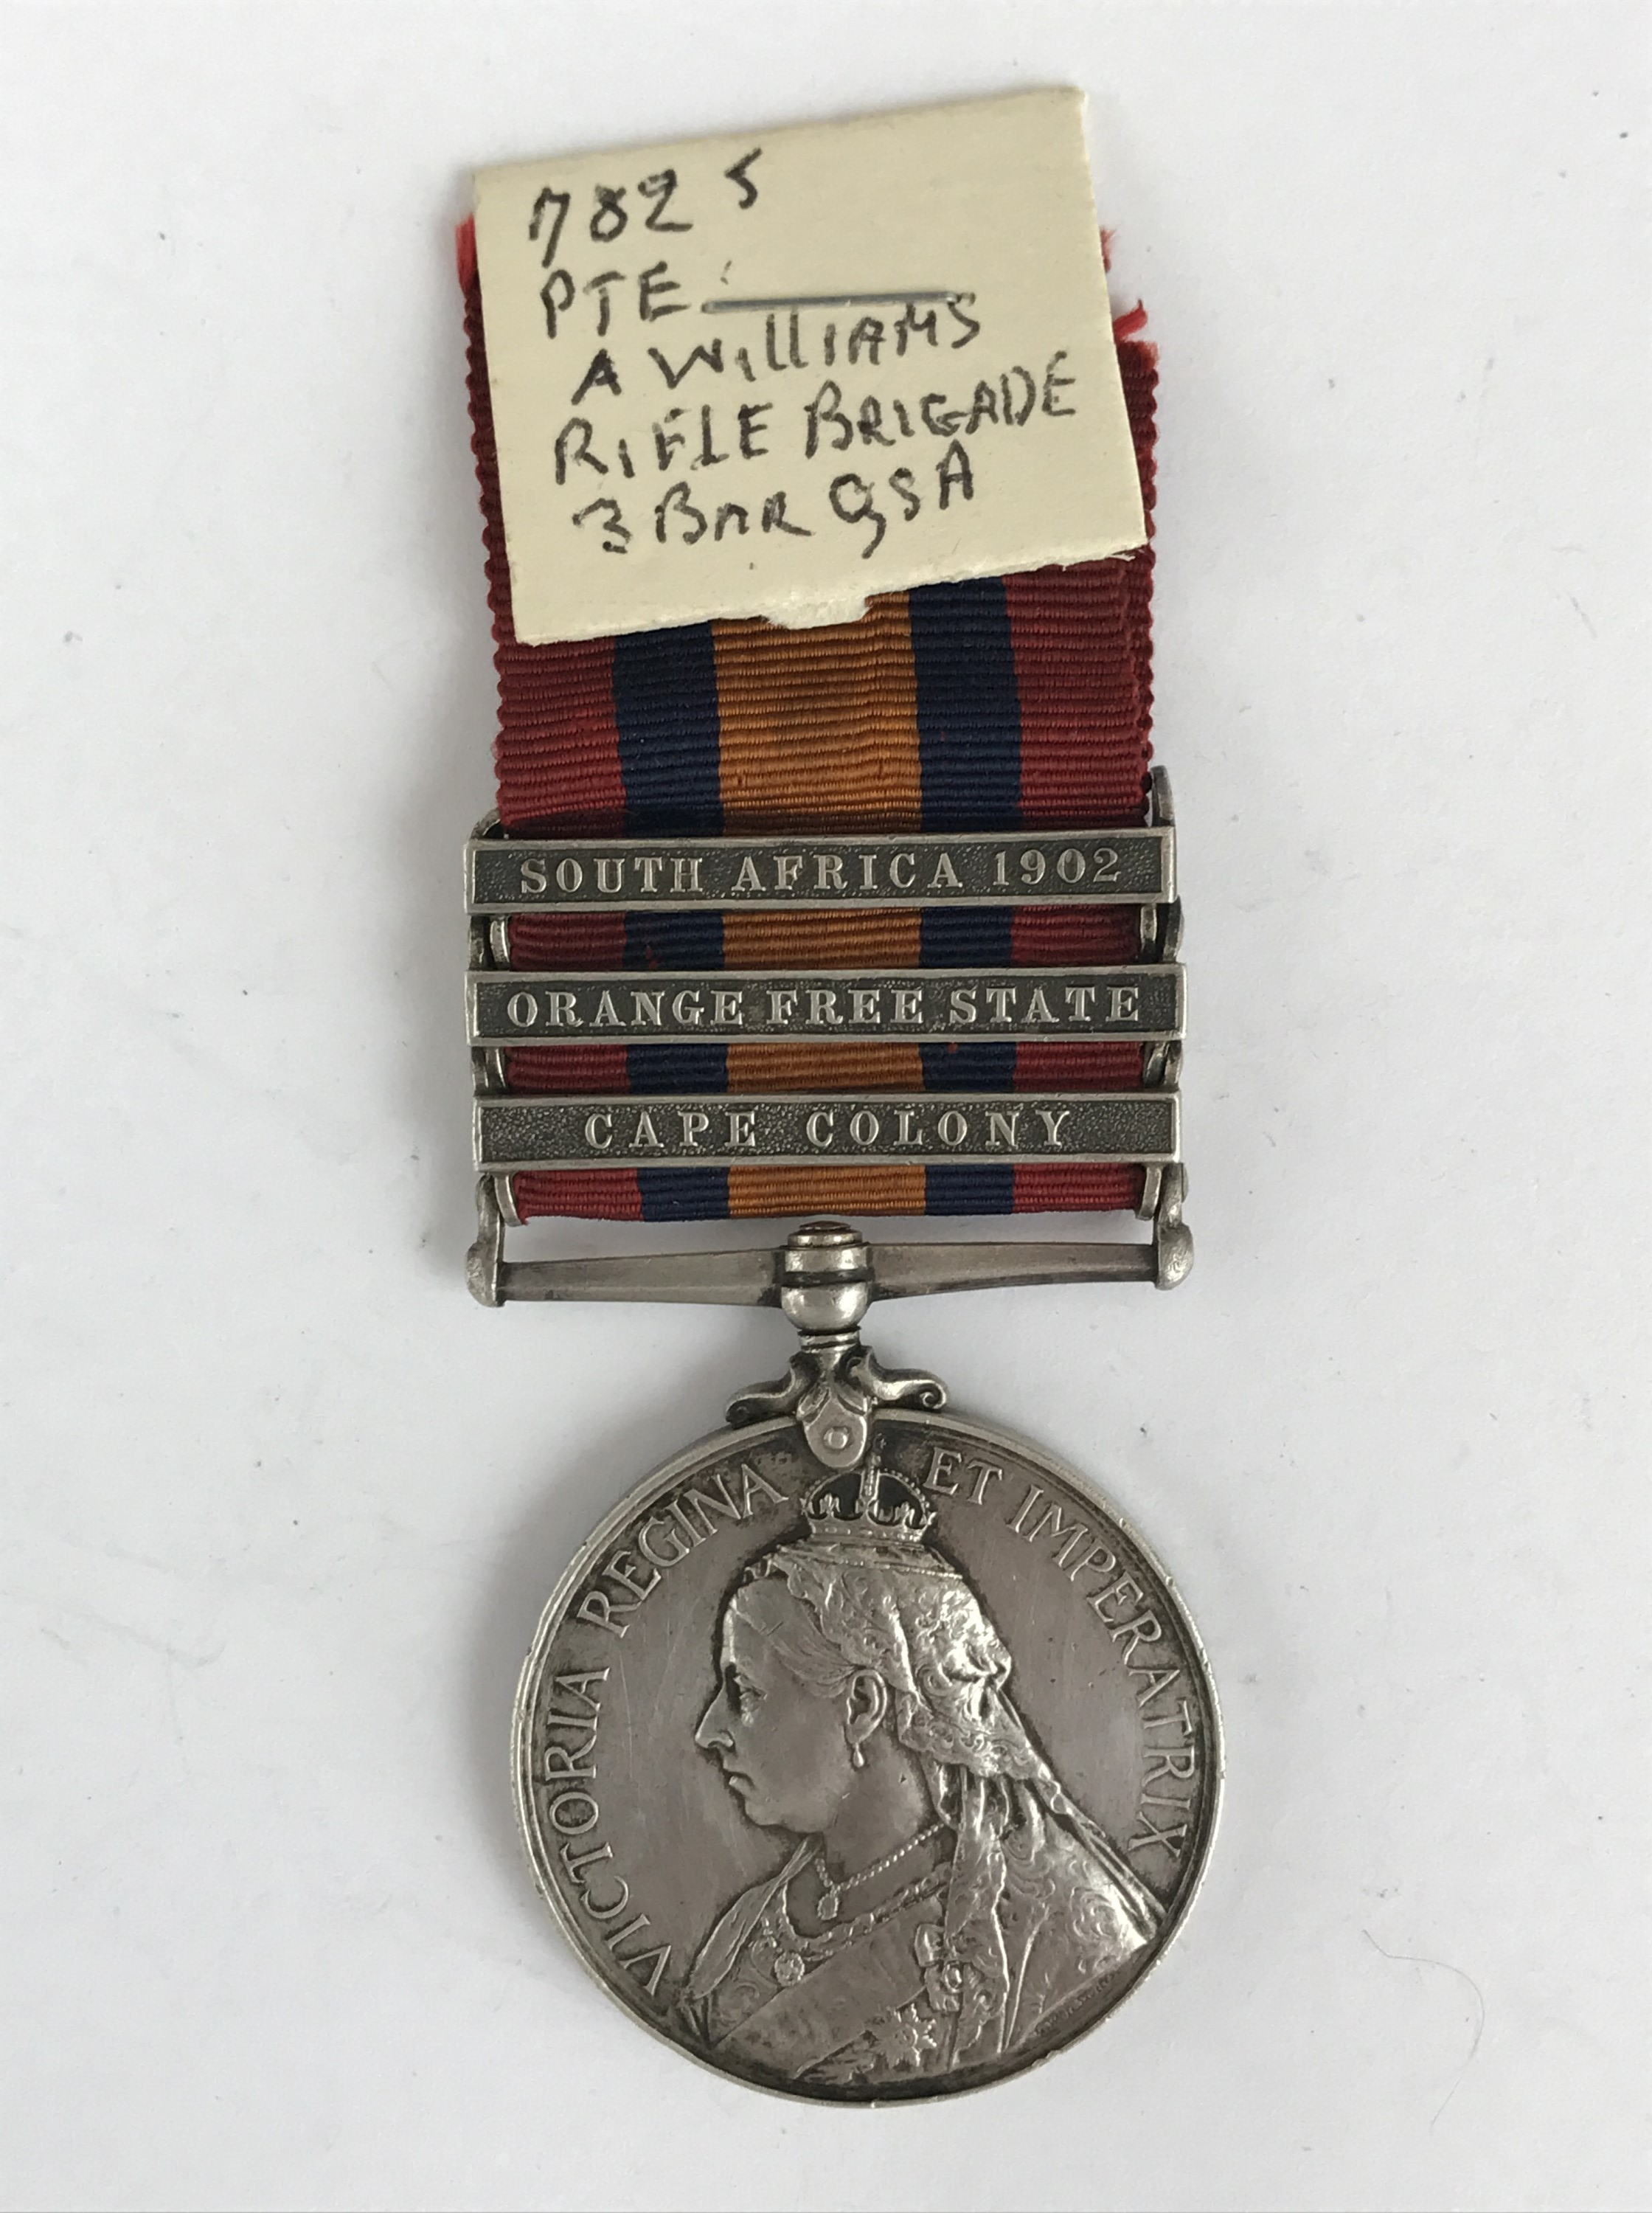 Lot 30 - A Queen's South Africa medal to 7825 Pte A Williams, Rifle Brigade